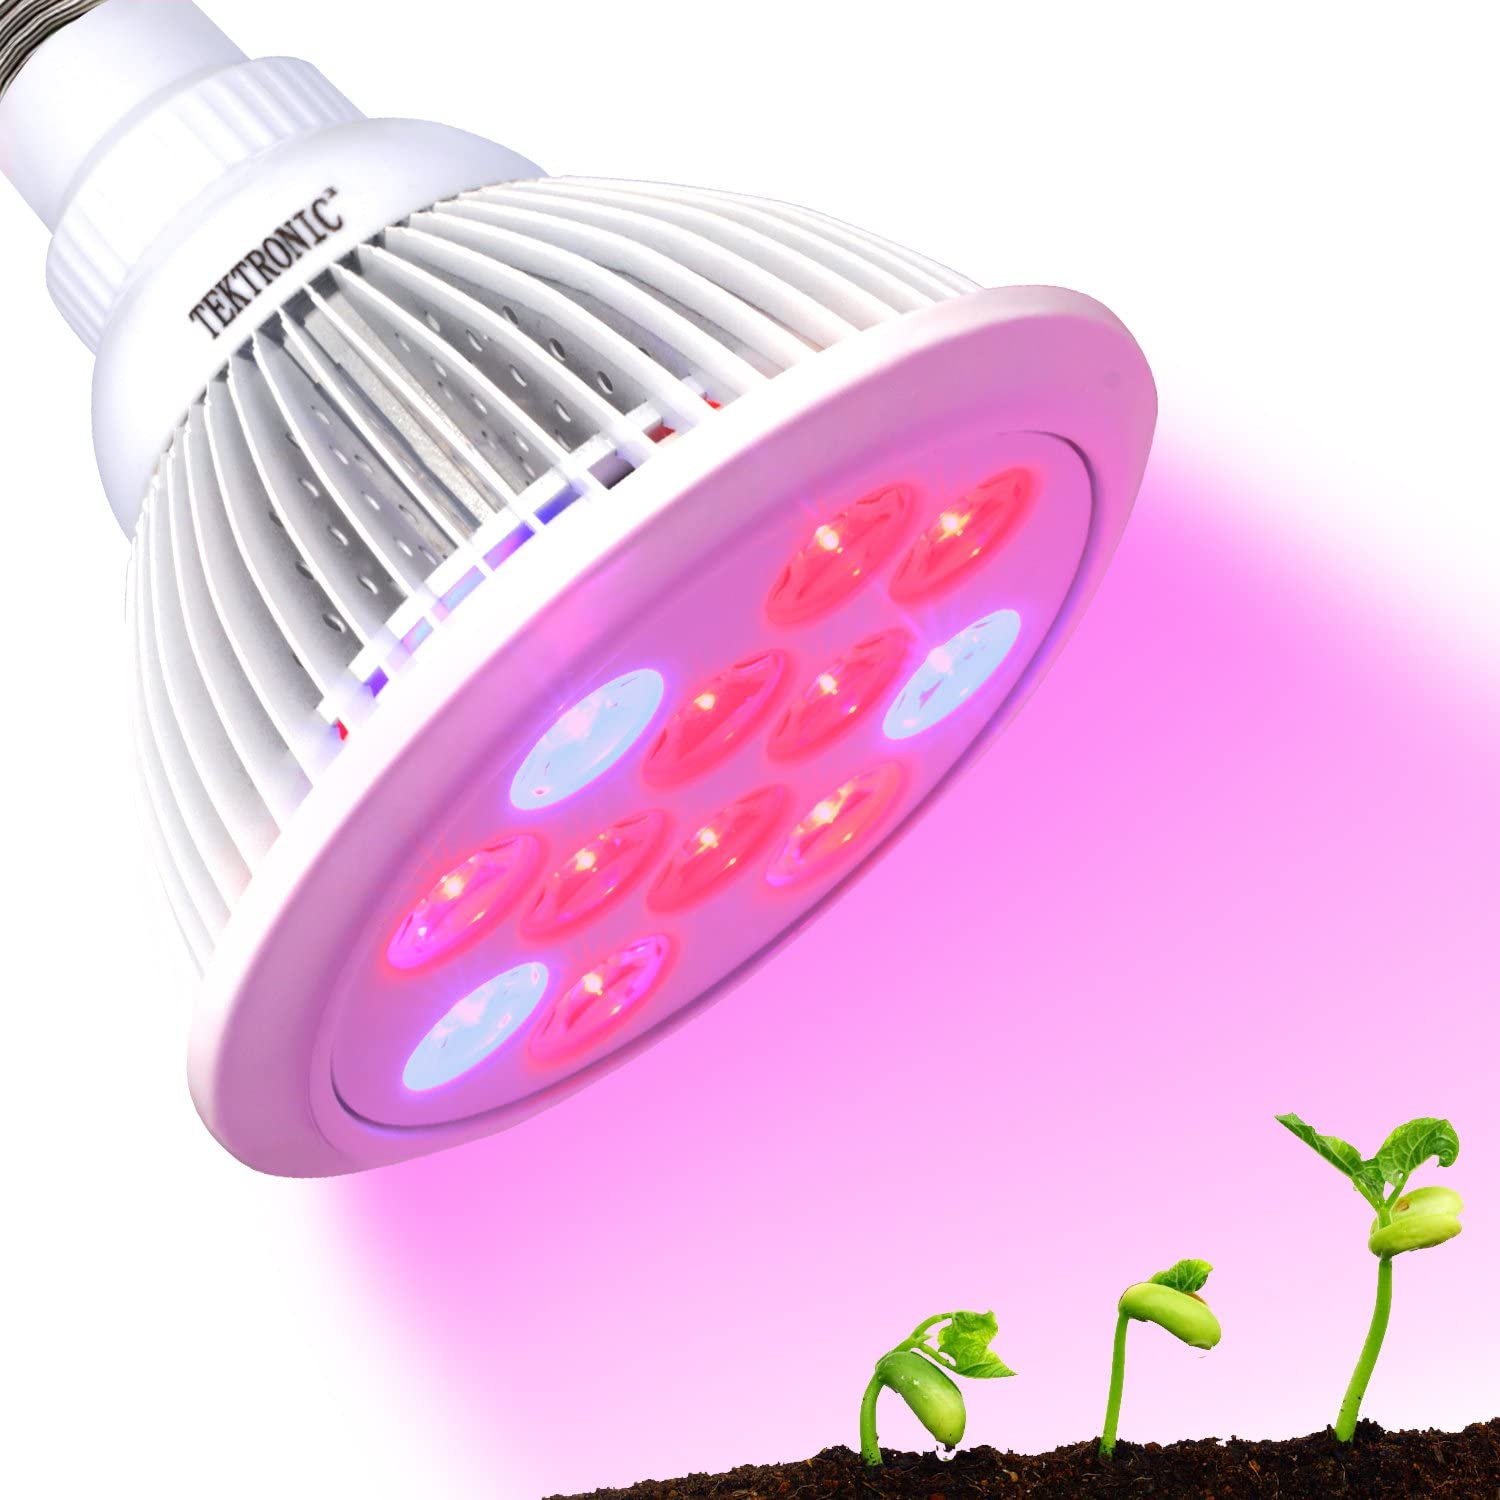 TekSky LED Grow Light Bulb 12W, Plant Grow Lamp for Indoor Hydroponics Greenhouse Organic E27 12W 3 Bands